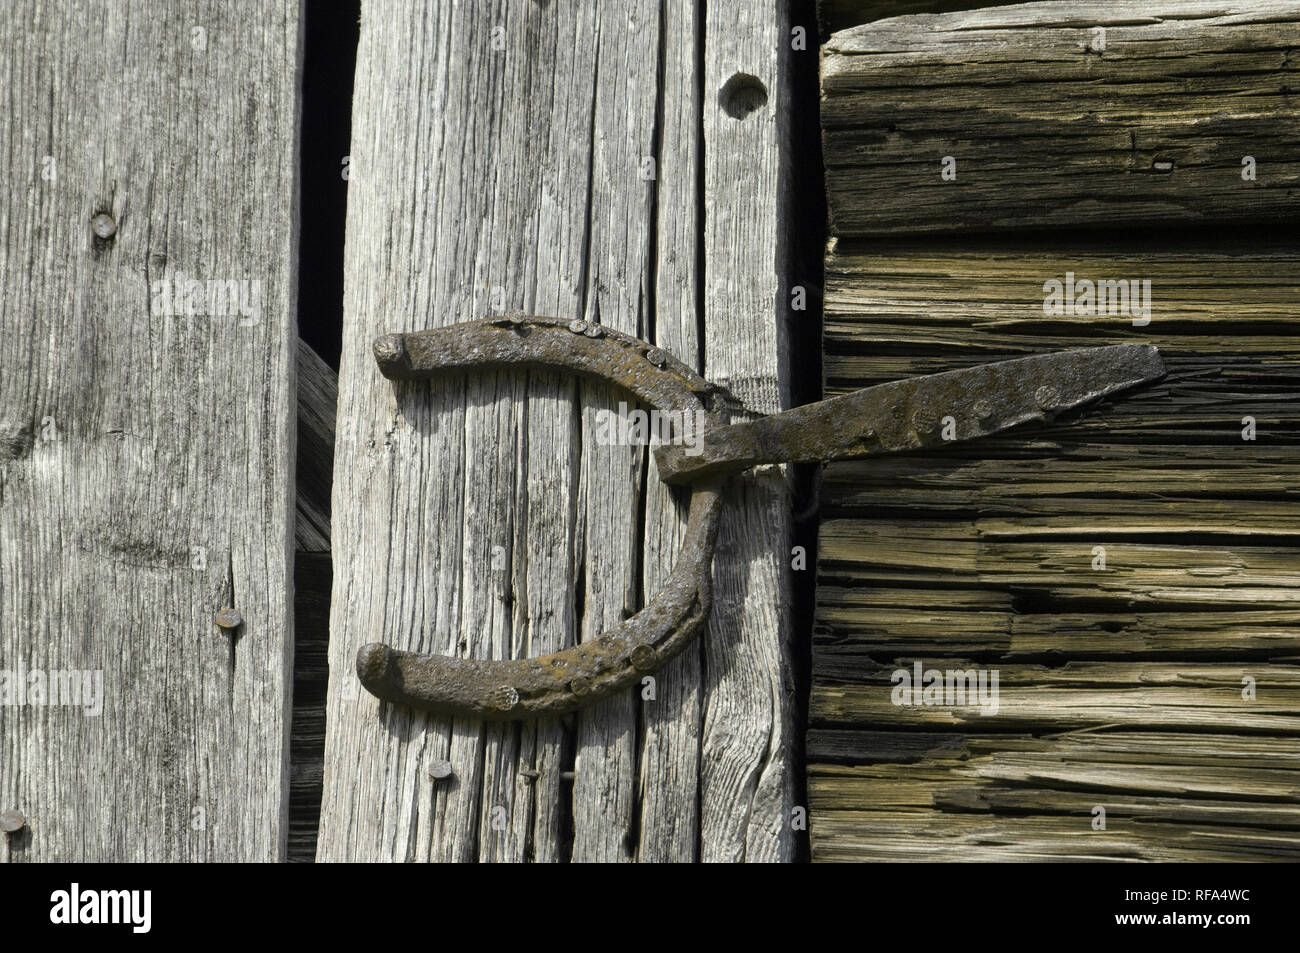 Handmade hinge made of a horseshoe, Great Smokey Mountains National Park, border of NC and TN. Digital photograph - Stock Image